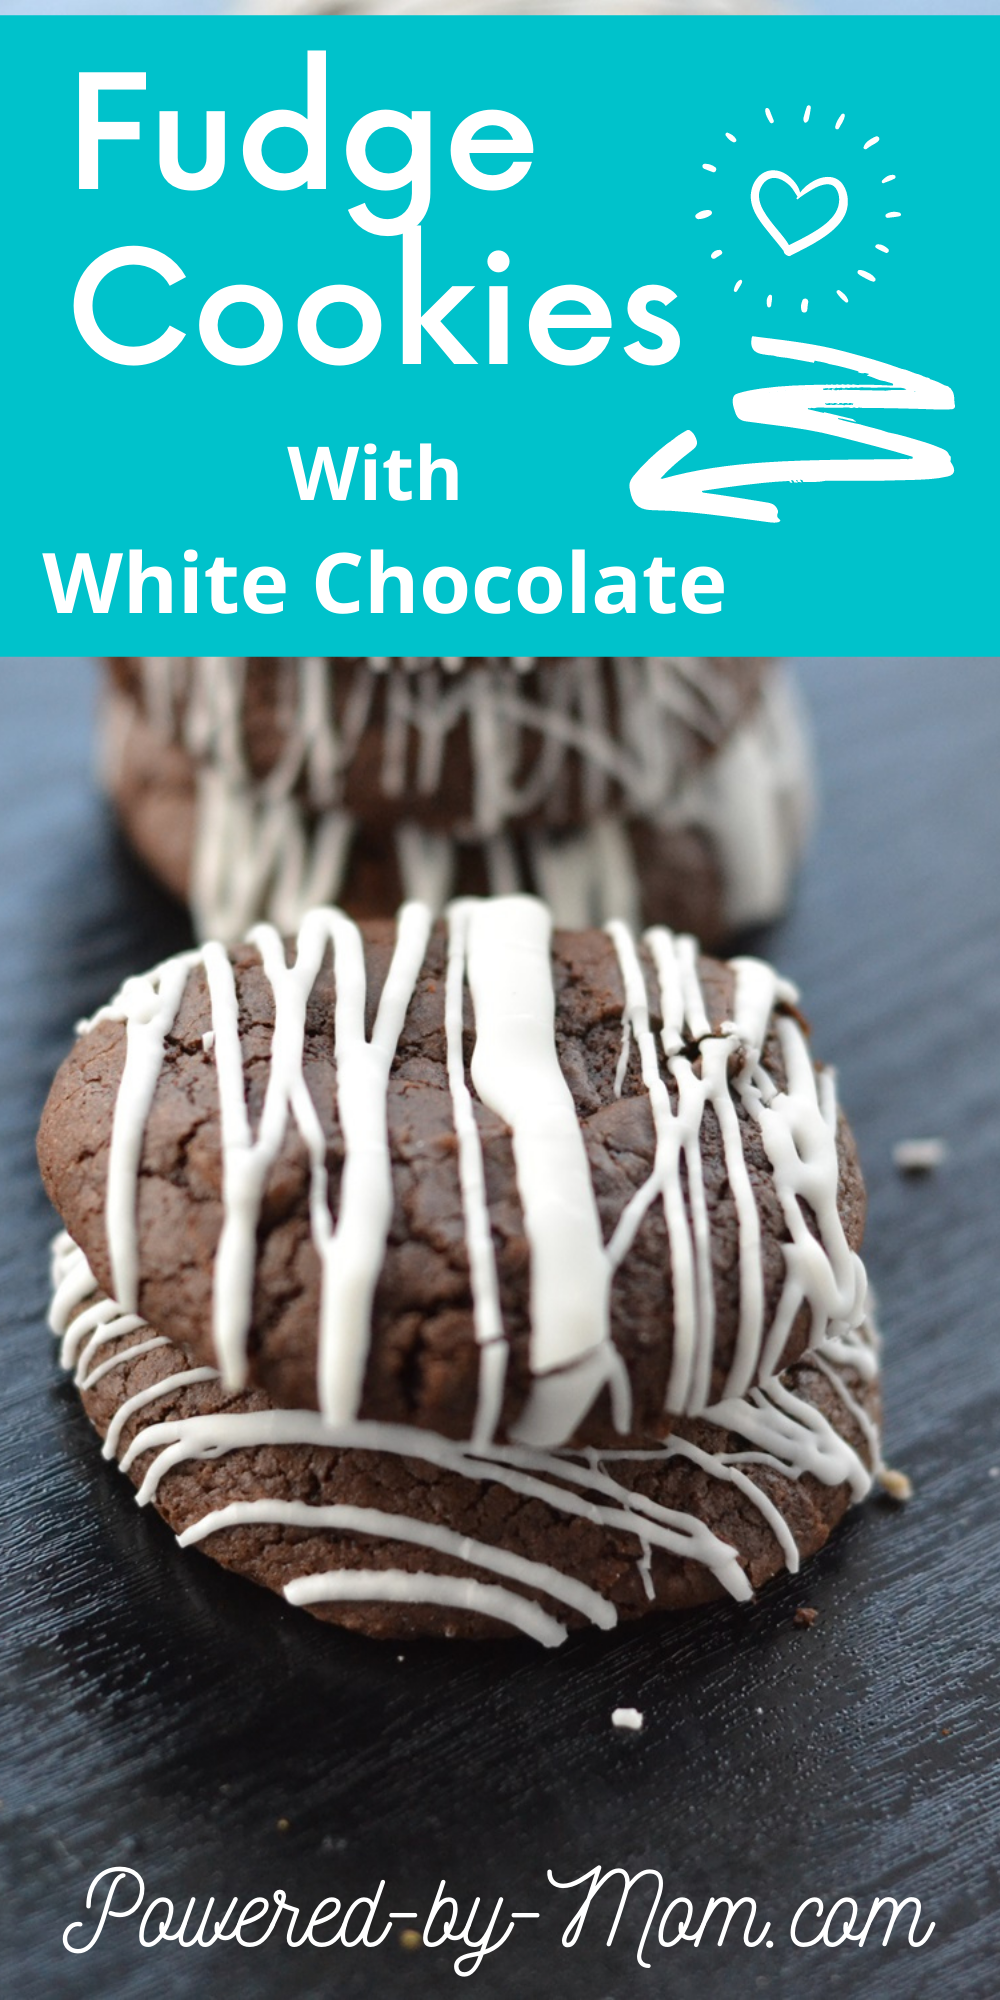 Enjoy these soft and chewy but crispy on the ends fudge cookies with white drizzle. An easy and delicious recipe for everyone to enjoy.